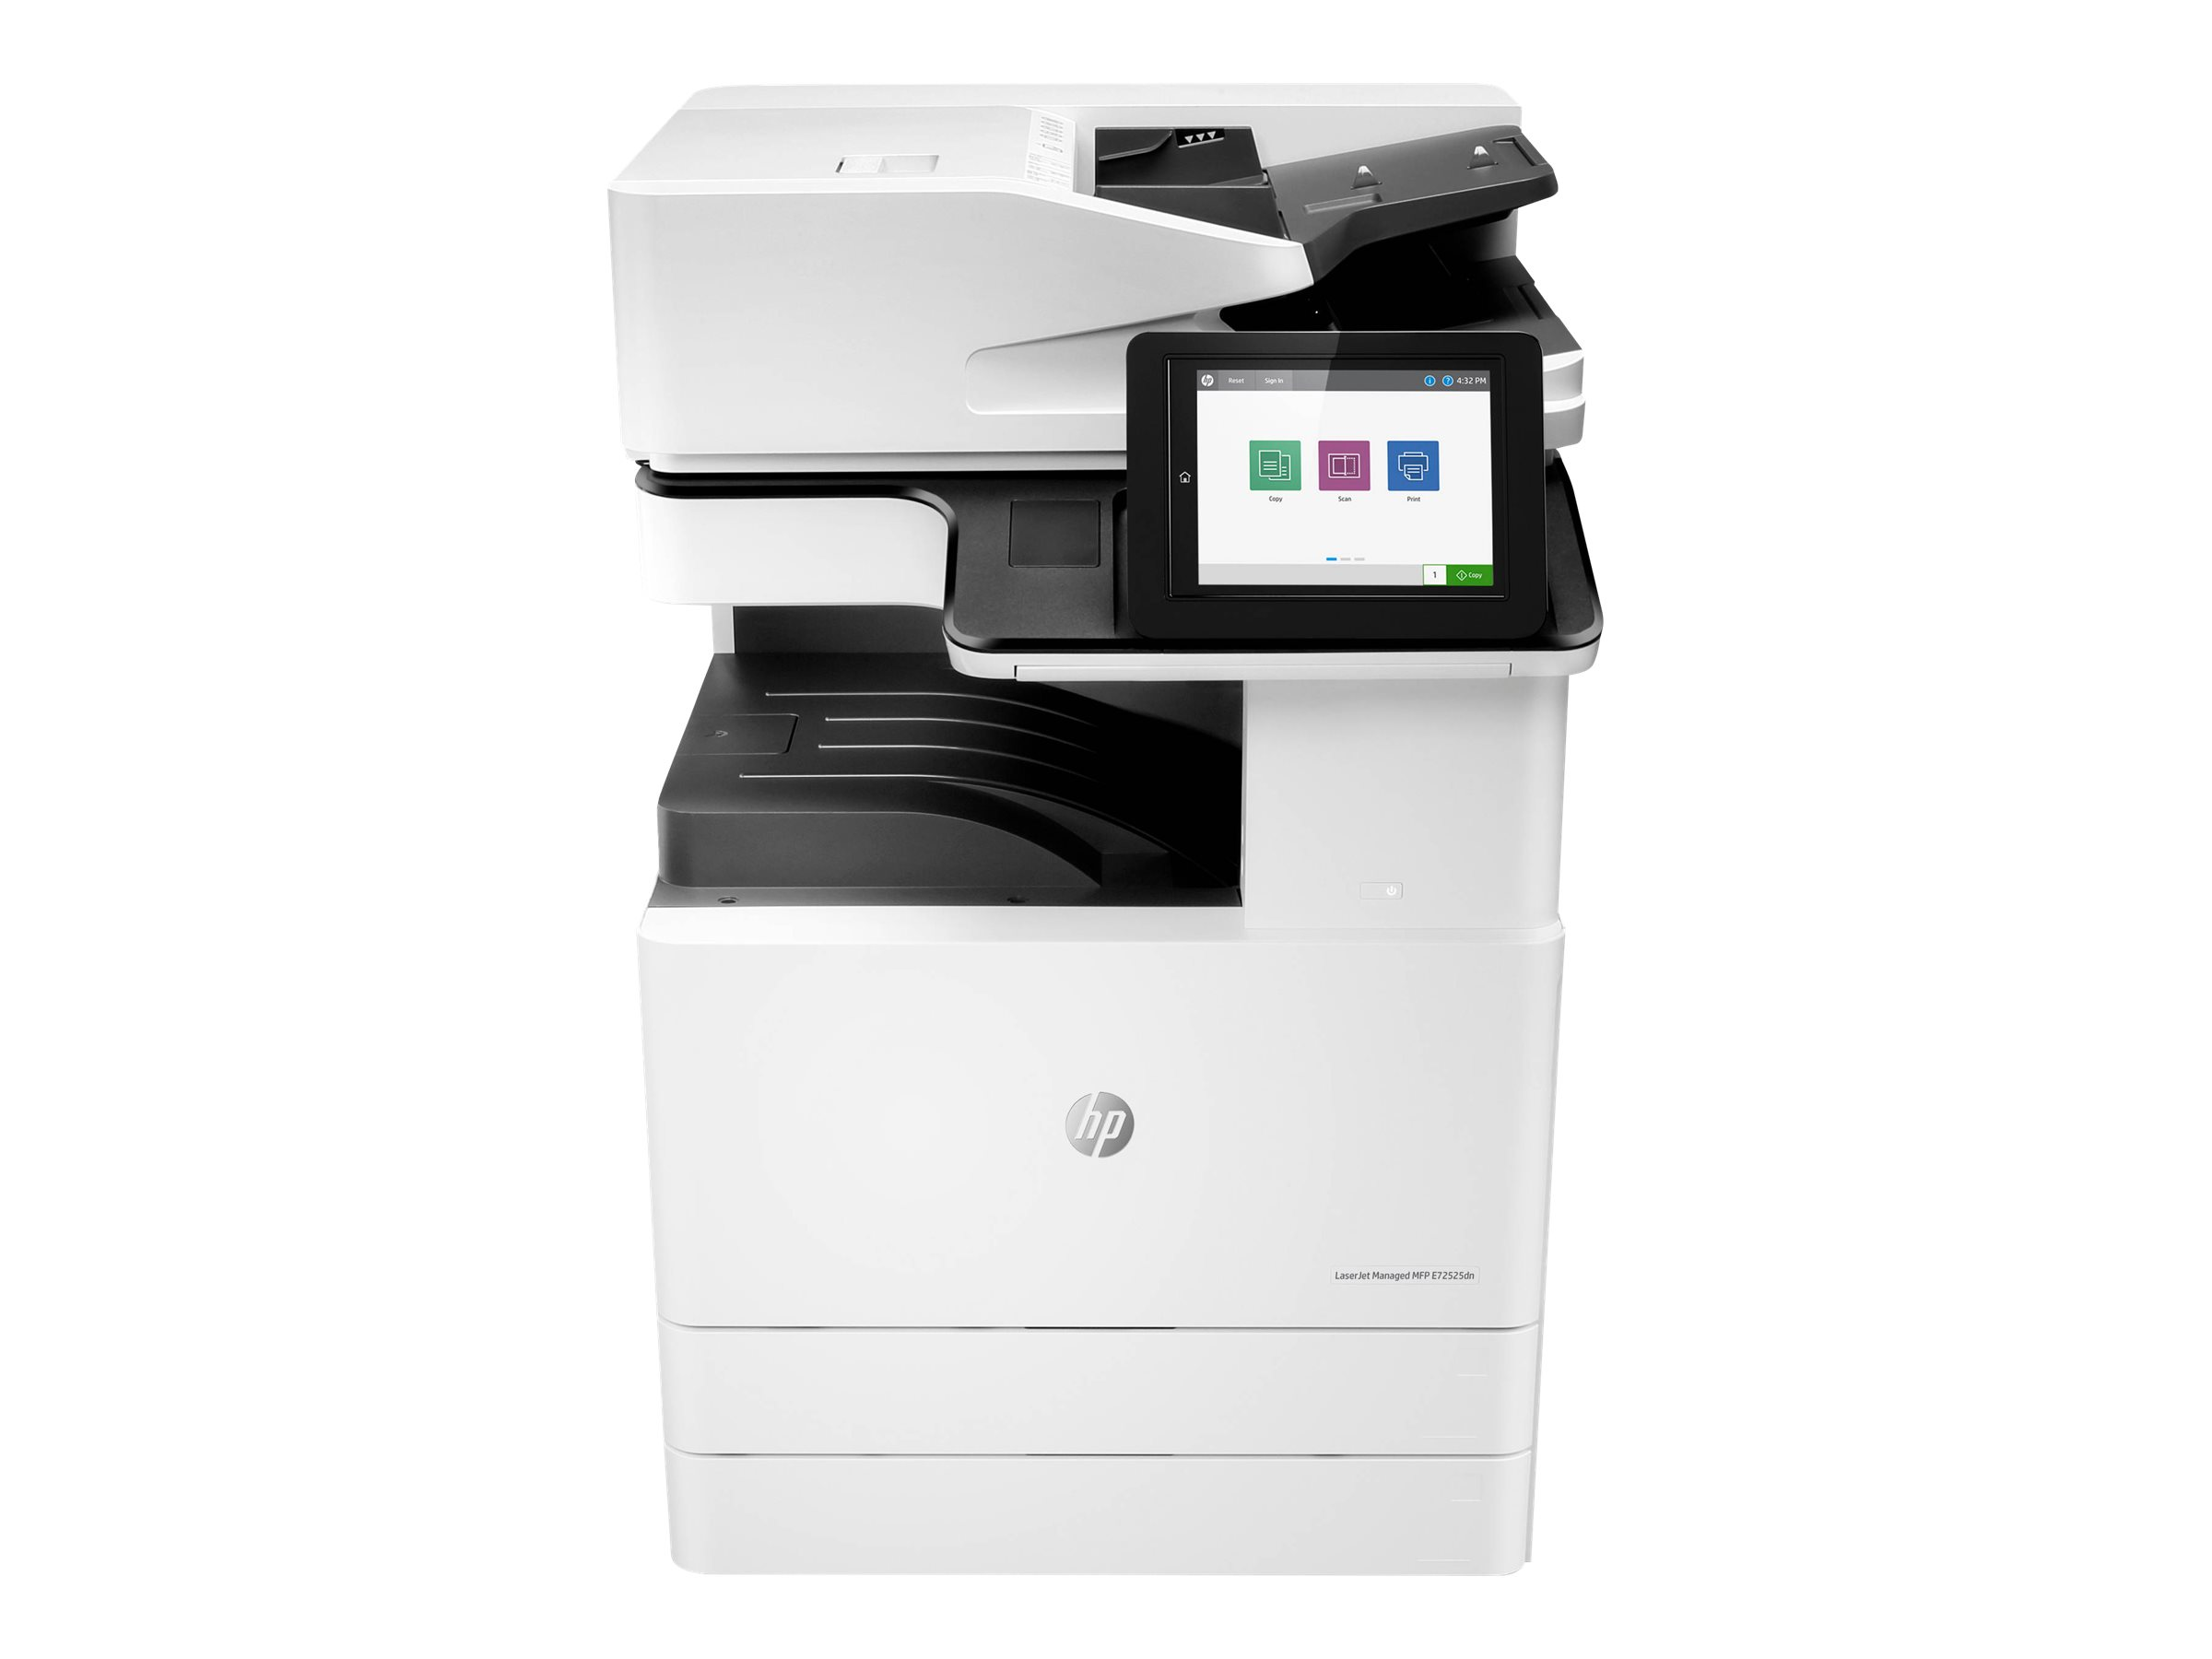 Copieur Color LaserJet Managed Flow MFP HP E77822z - vitesse 22ppm vue avant